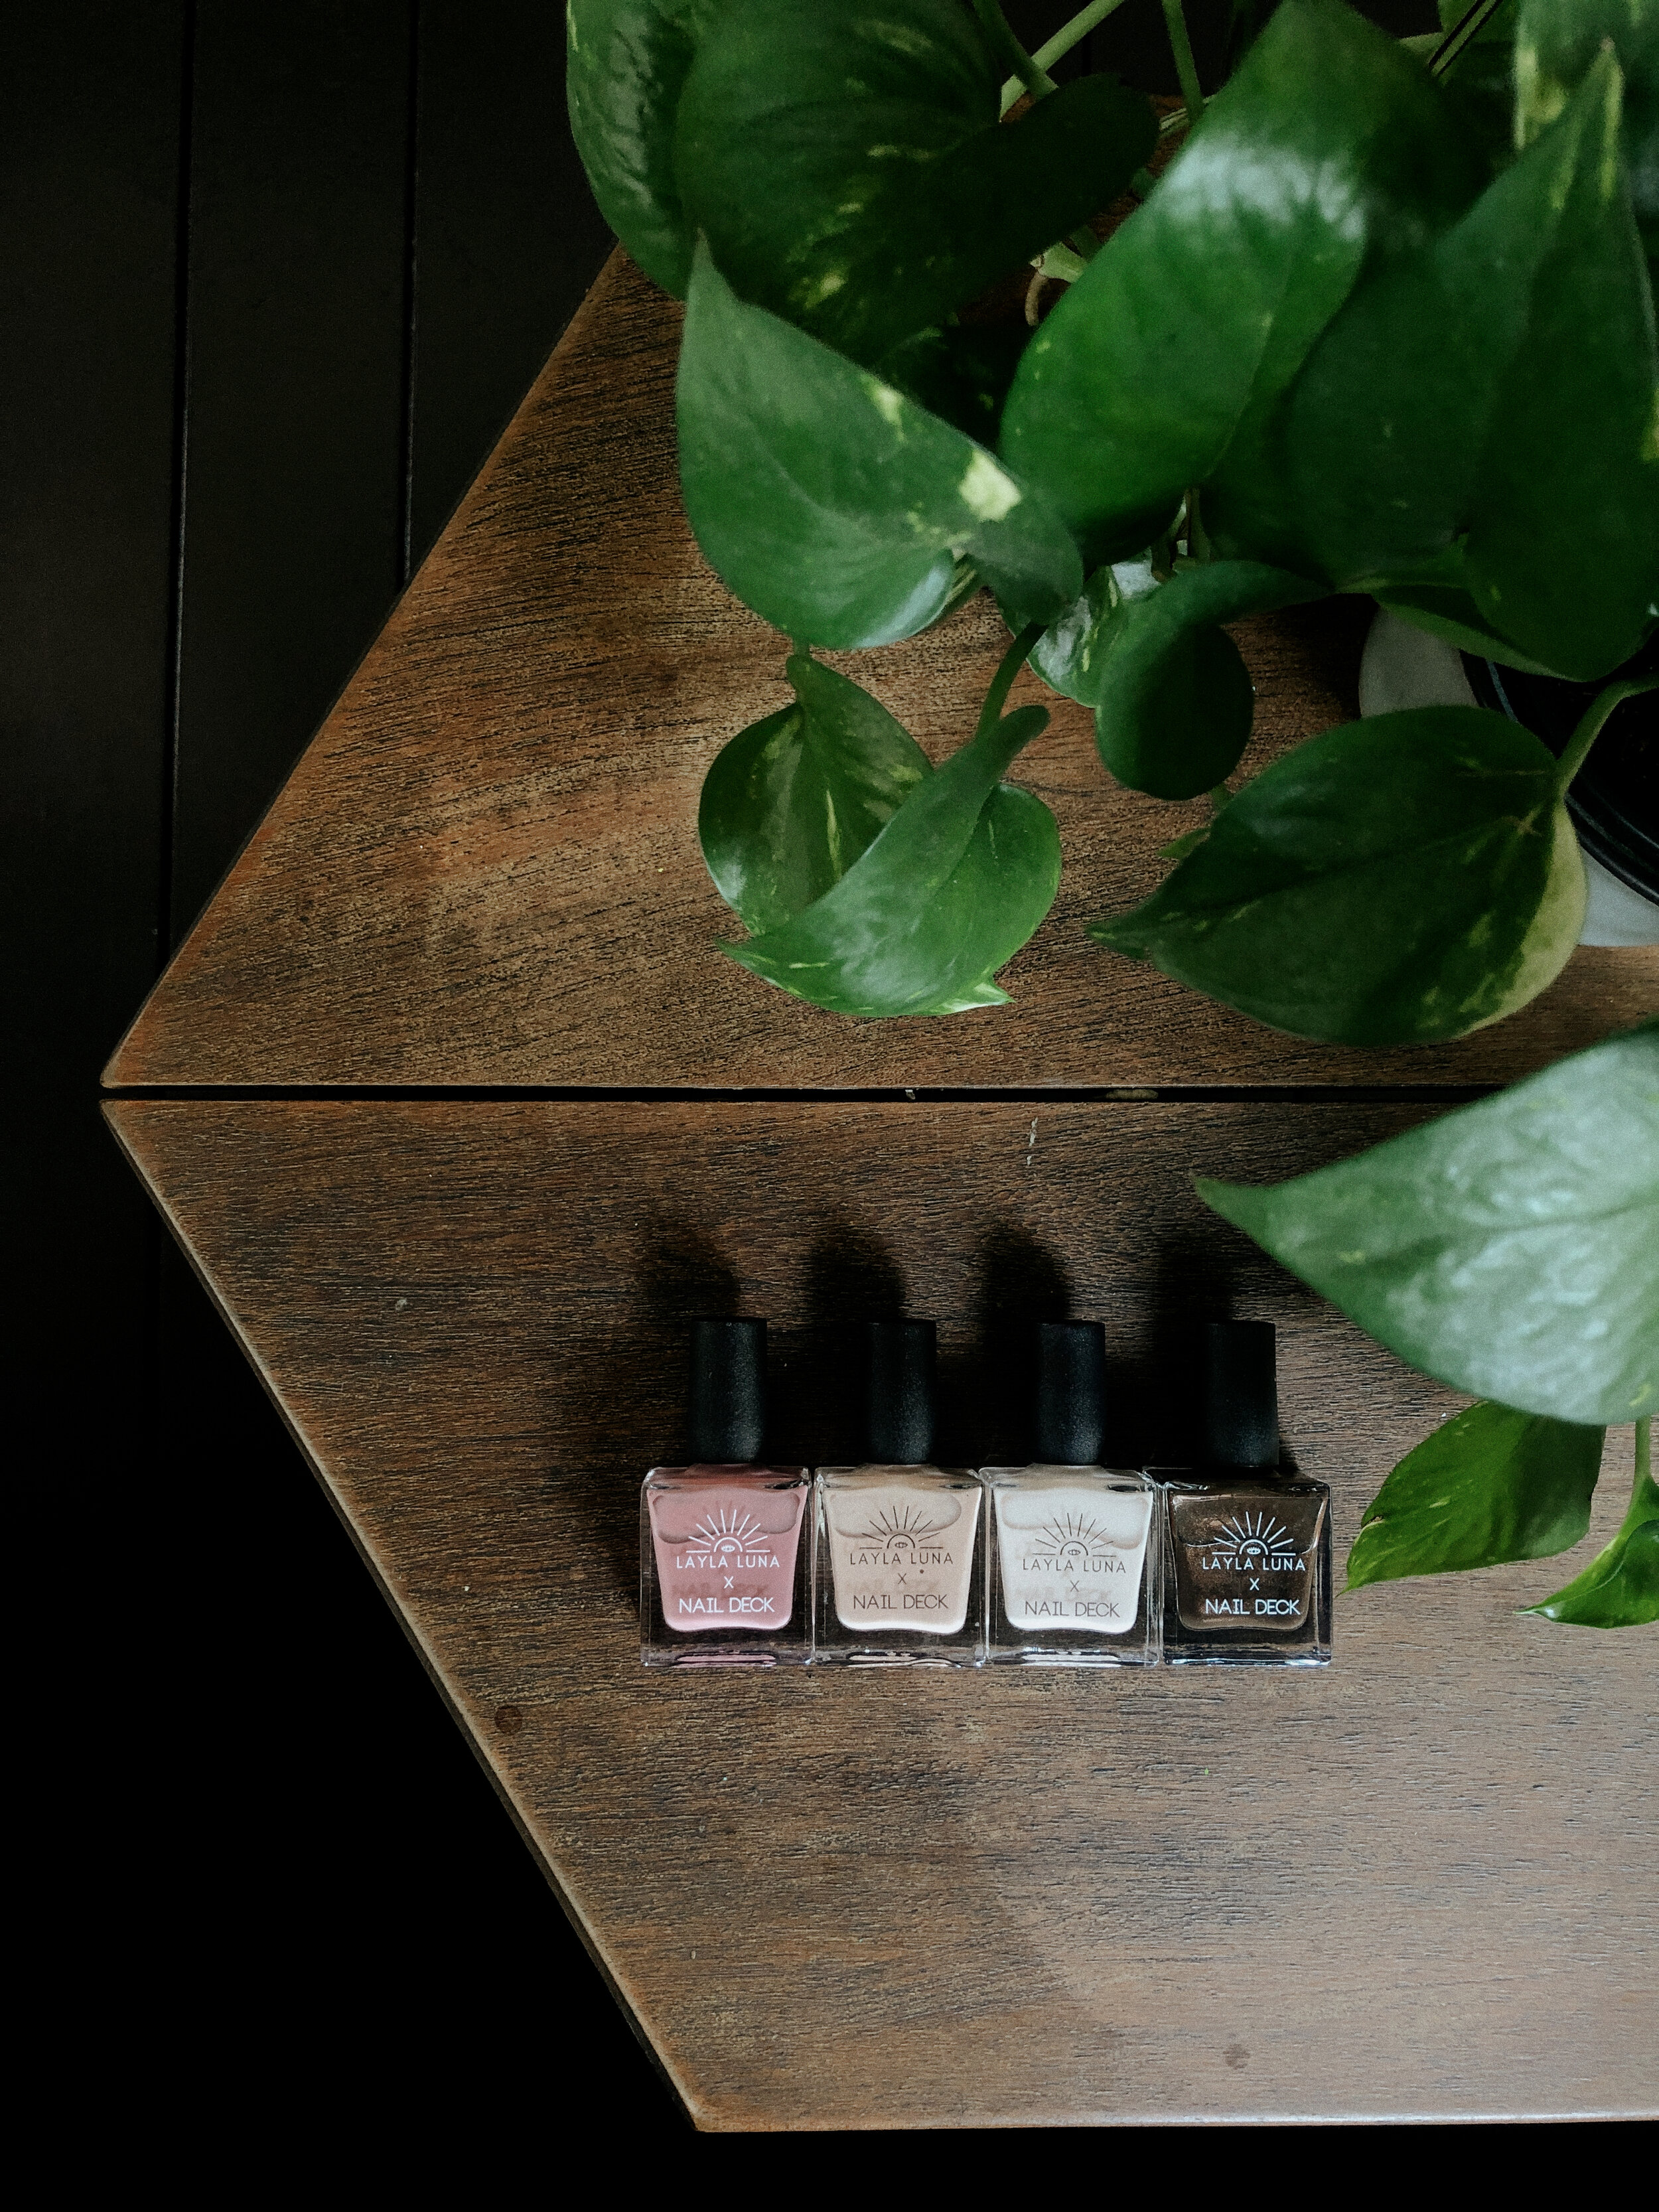 World Animal Day Exclusive - In collaboration with Layla Luna, we're so excited to bring you four curated nail polish shades inspired by our favourite Maltipoo, Layla.Each one bottled by hand, with love and made in limited batches to avoid waste & overproduction.20% of every bottle goes to Keep Cats, a cat shelter based in Singapore